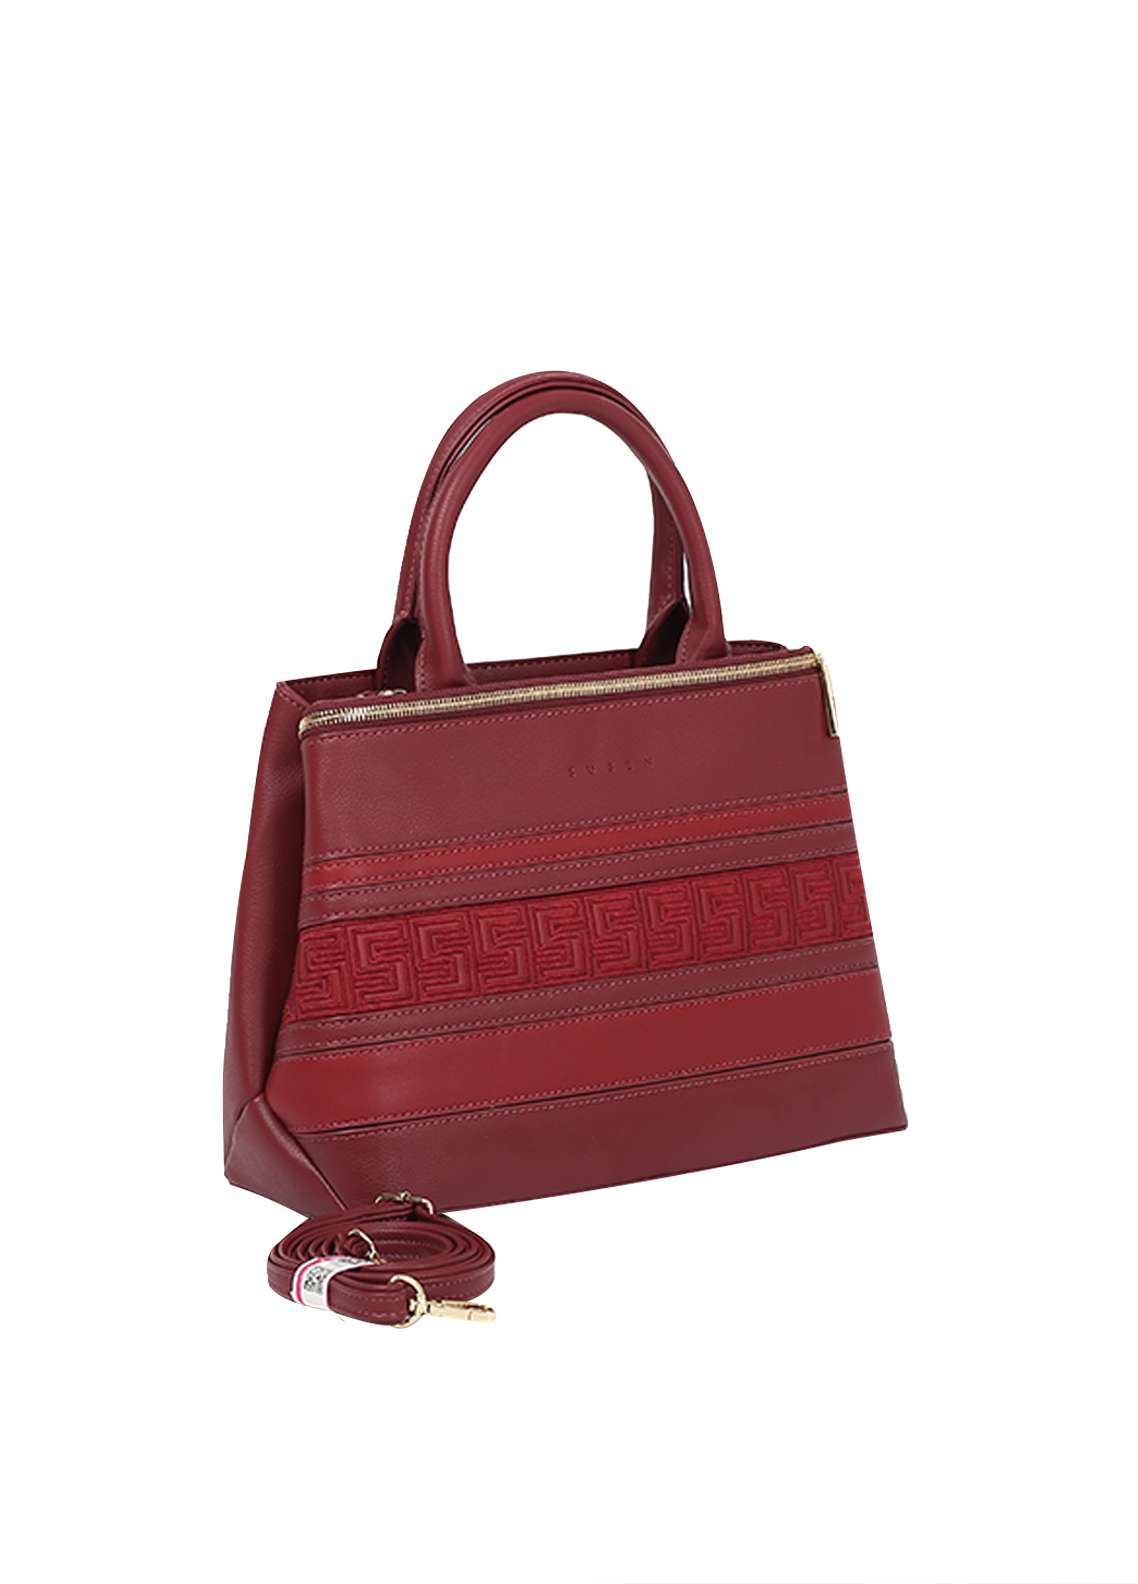 Susen PU Leather Satchels Bag for Women - Maroon with Stripes